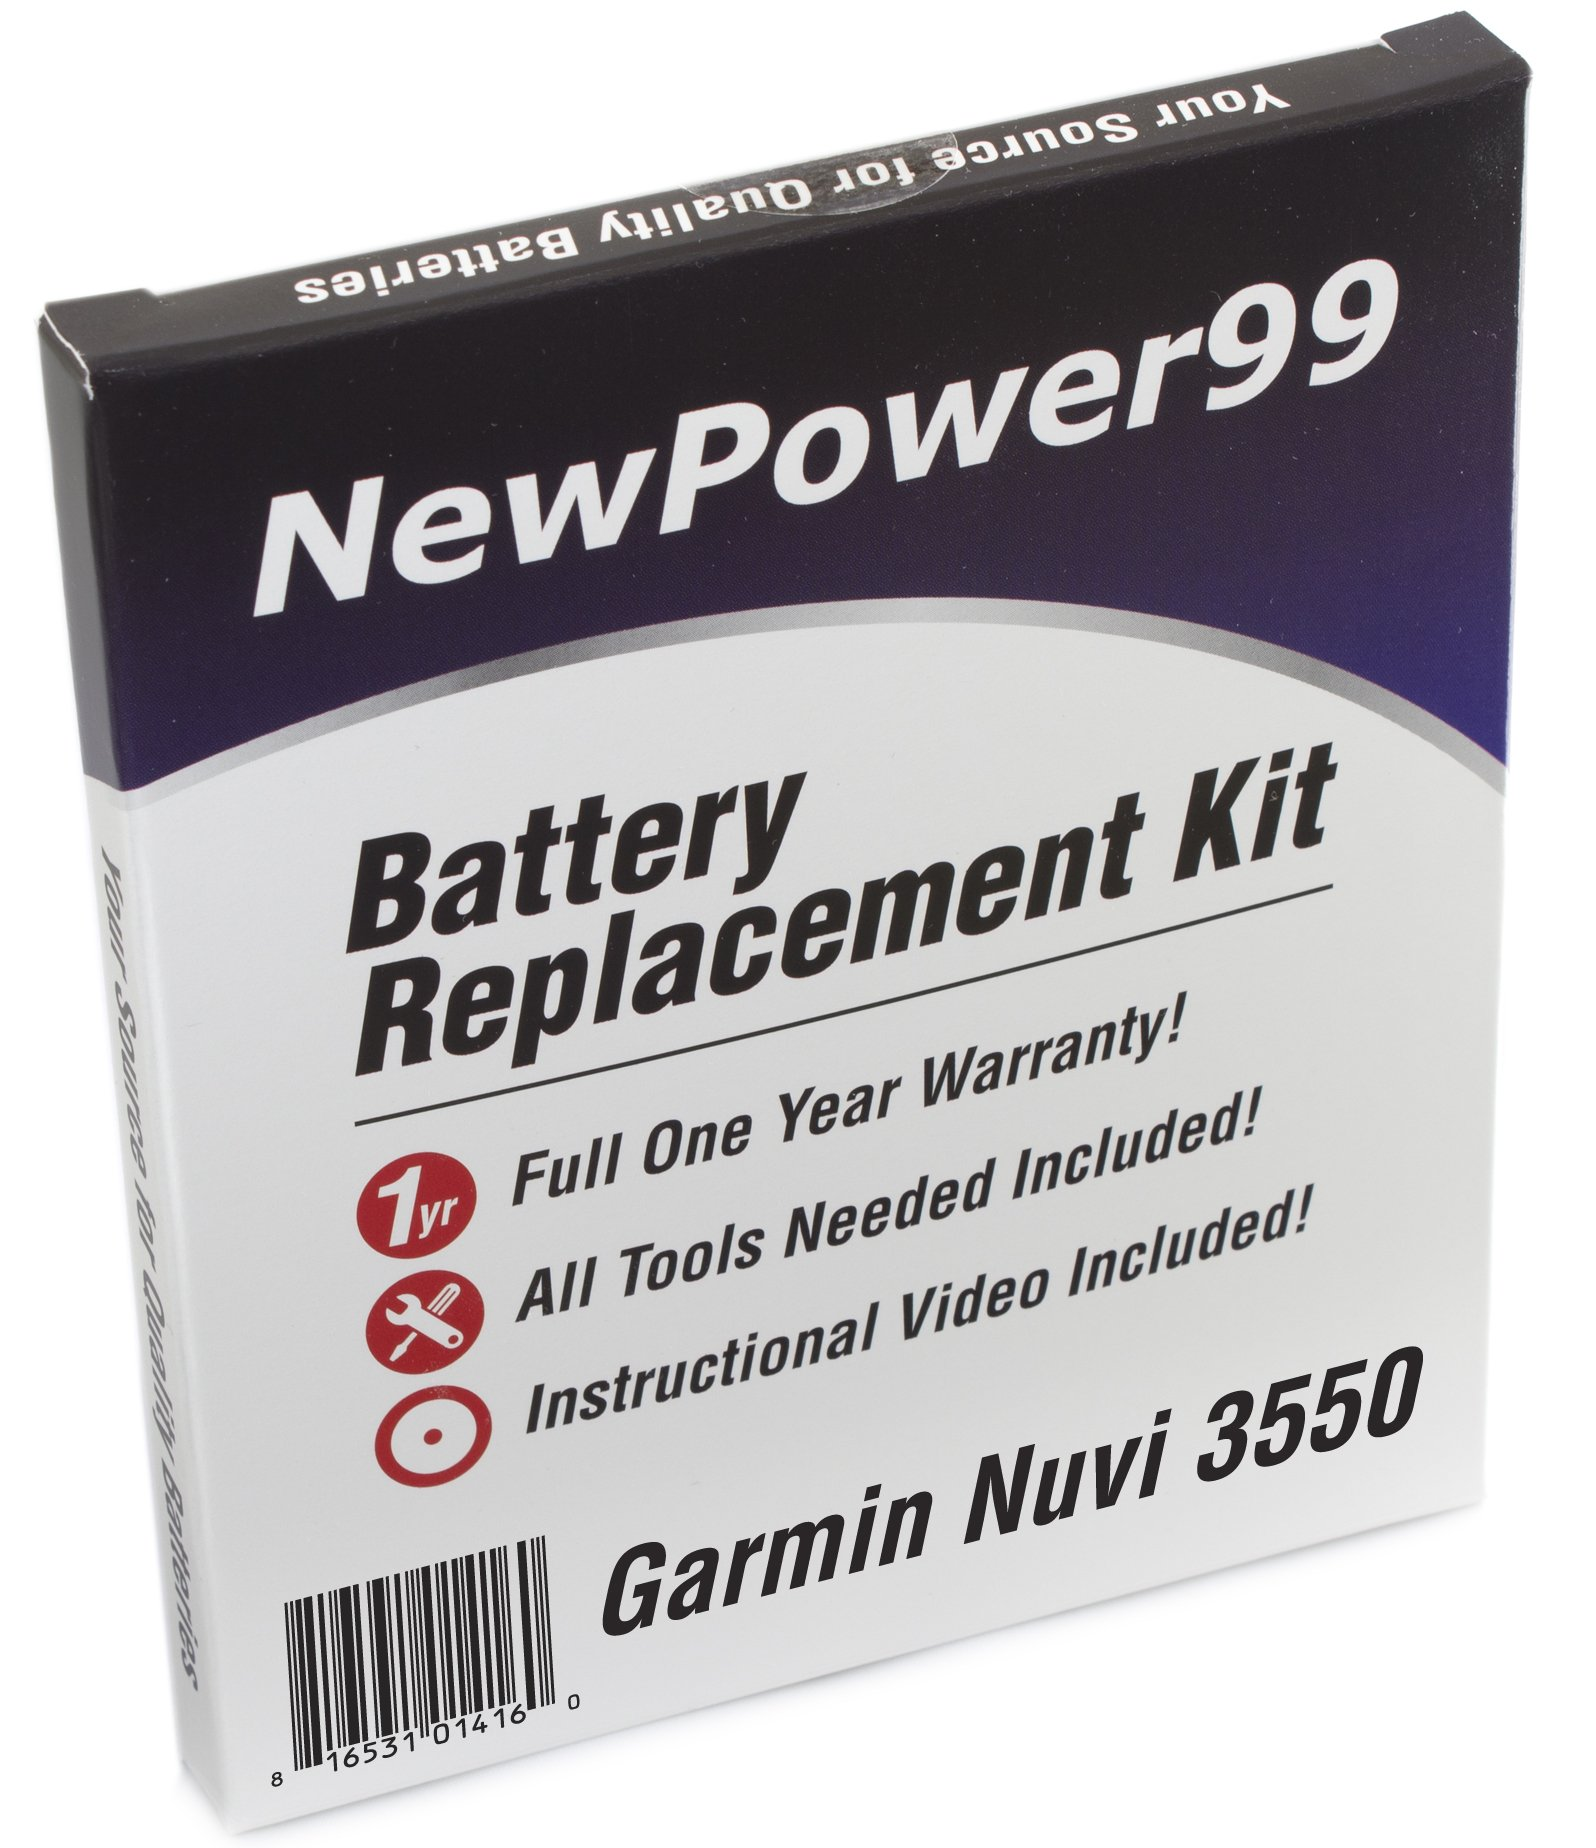 Battery Replacement Kit for Garmin Nuvi 3550 with Installation Video, Tools, and Extended Life Battery.